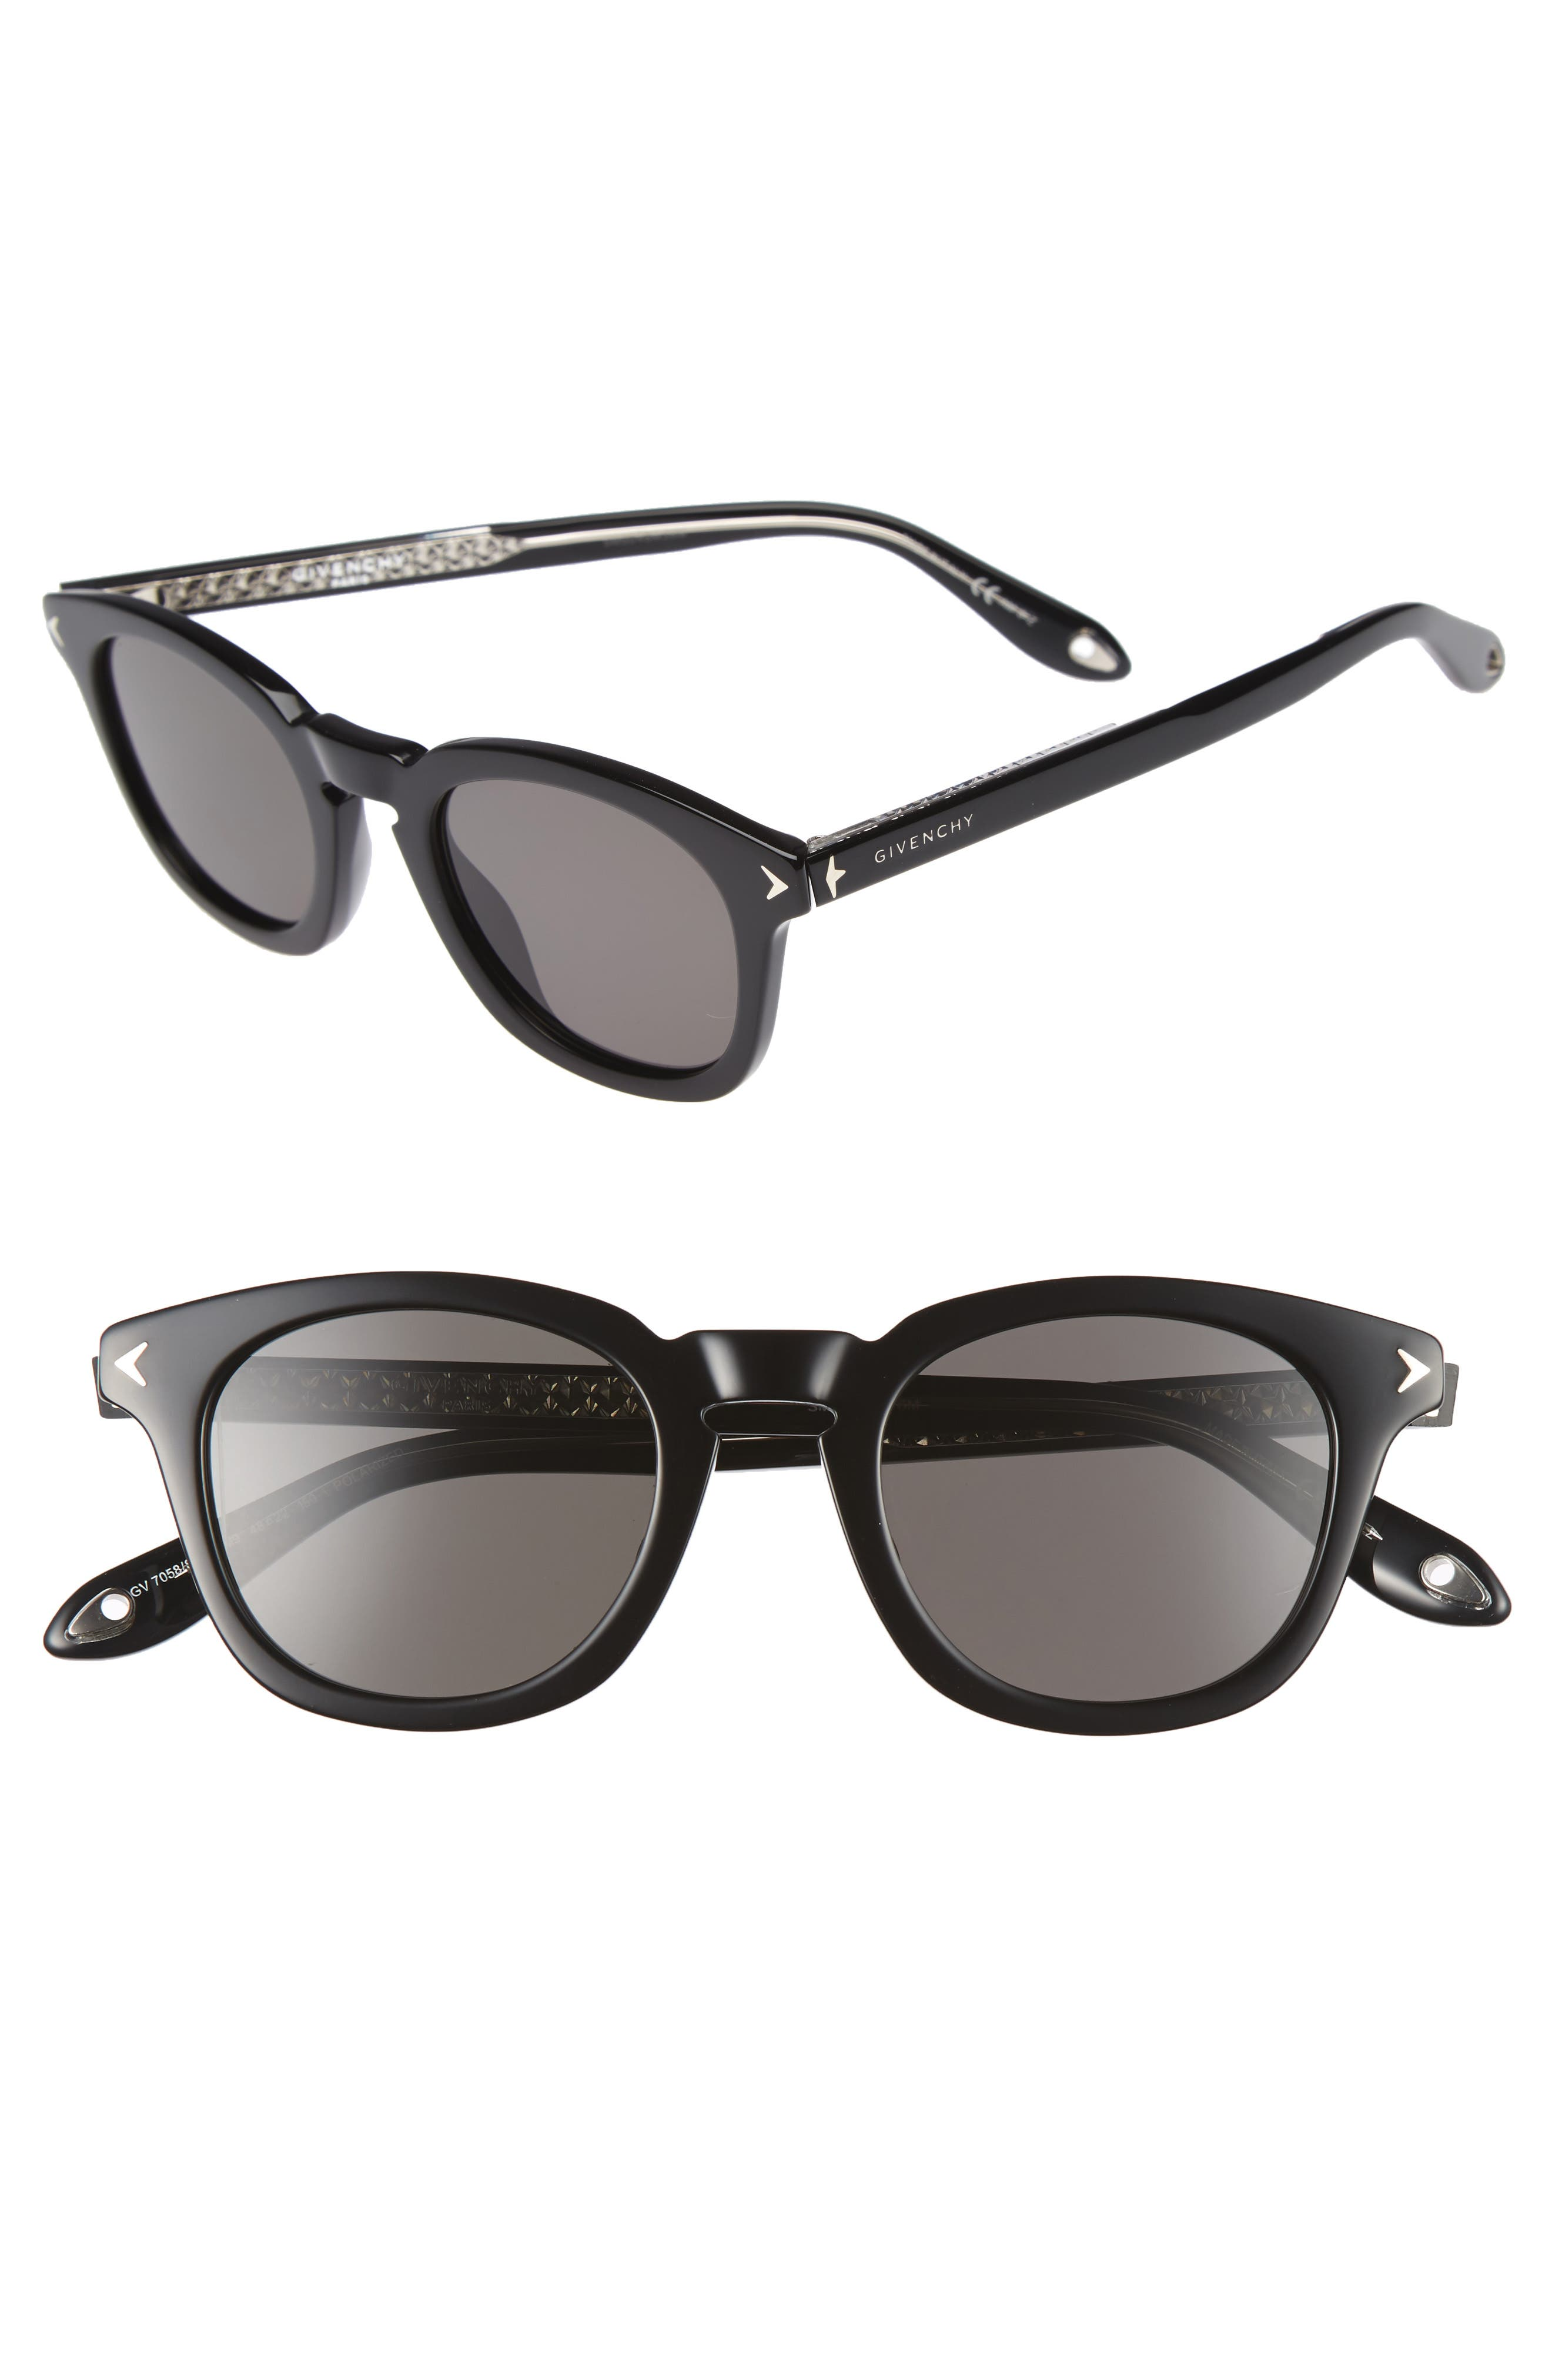 Givenchy 48mm Polarized Sunglasses